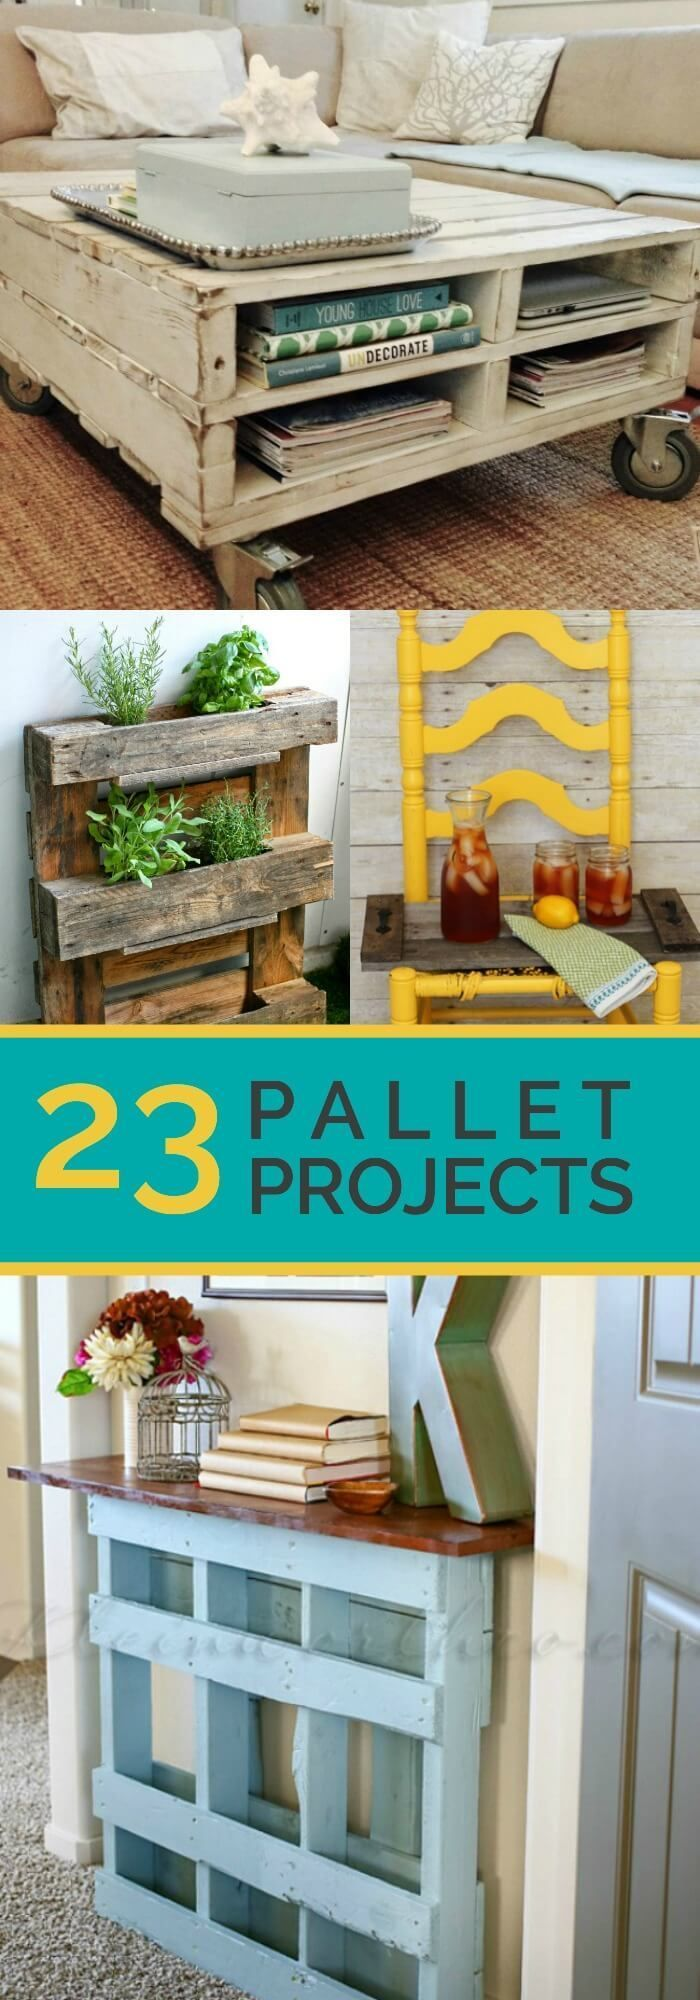 ... crafts, diy for on 211 daily home useful woodworking plans books pack